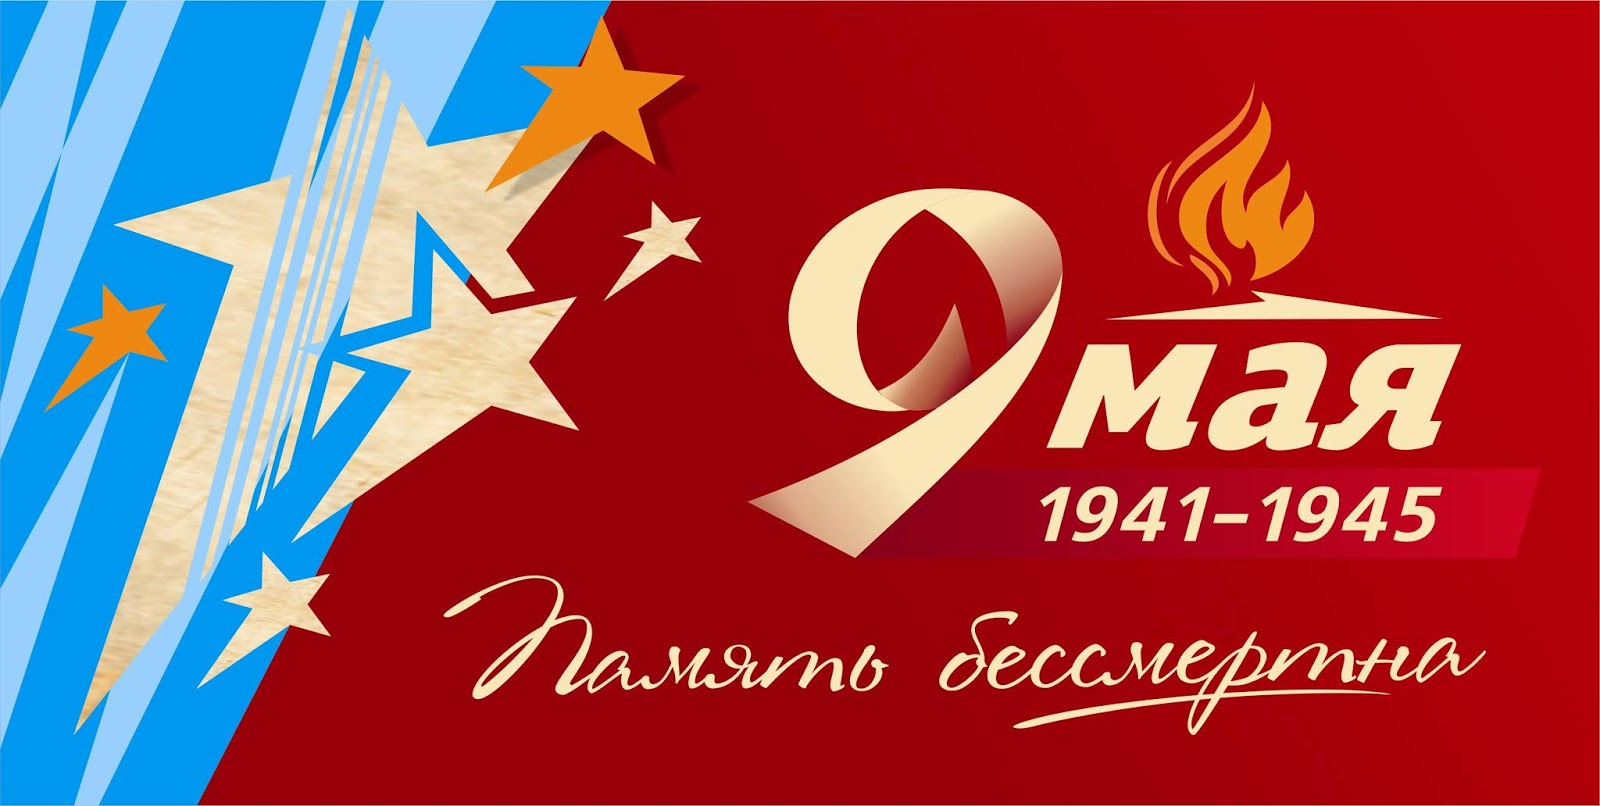 images/2018Holidays___May_9_Bright_greeting_card_for_Victory_Day_on_May_9_124135_.jpg